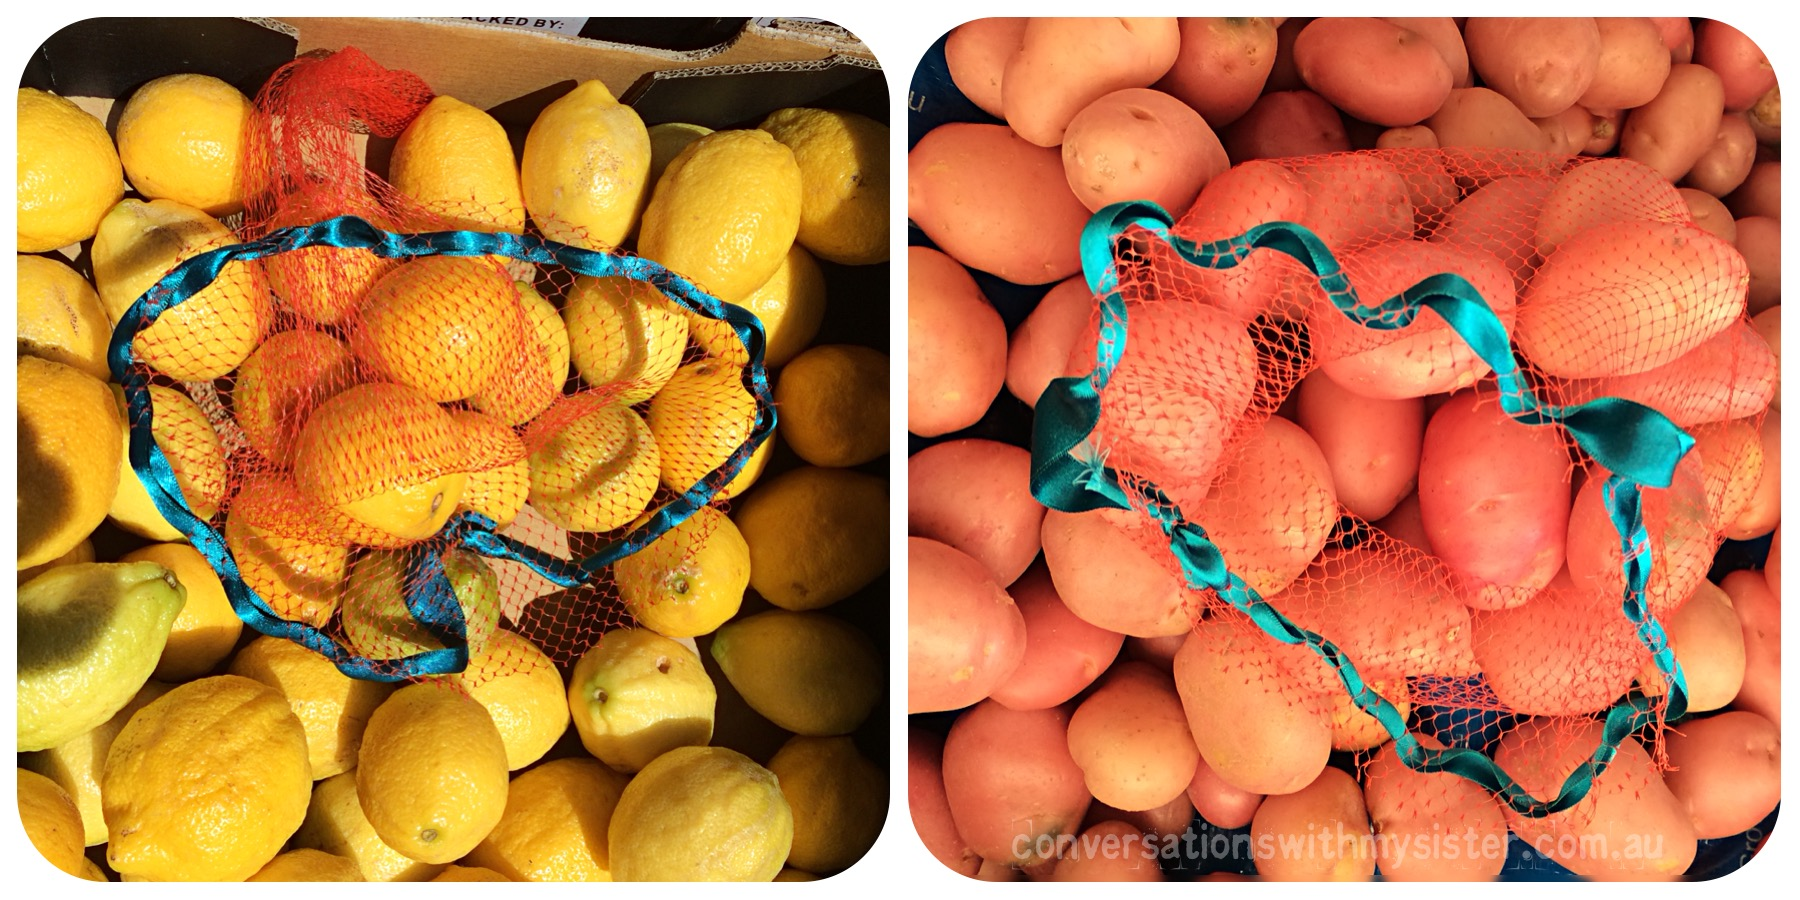 A Super Easy and Practical Way To Reuse Orange Produce Bags_conversationswithmysister.com.au